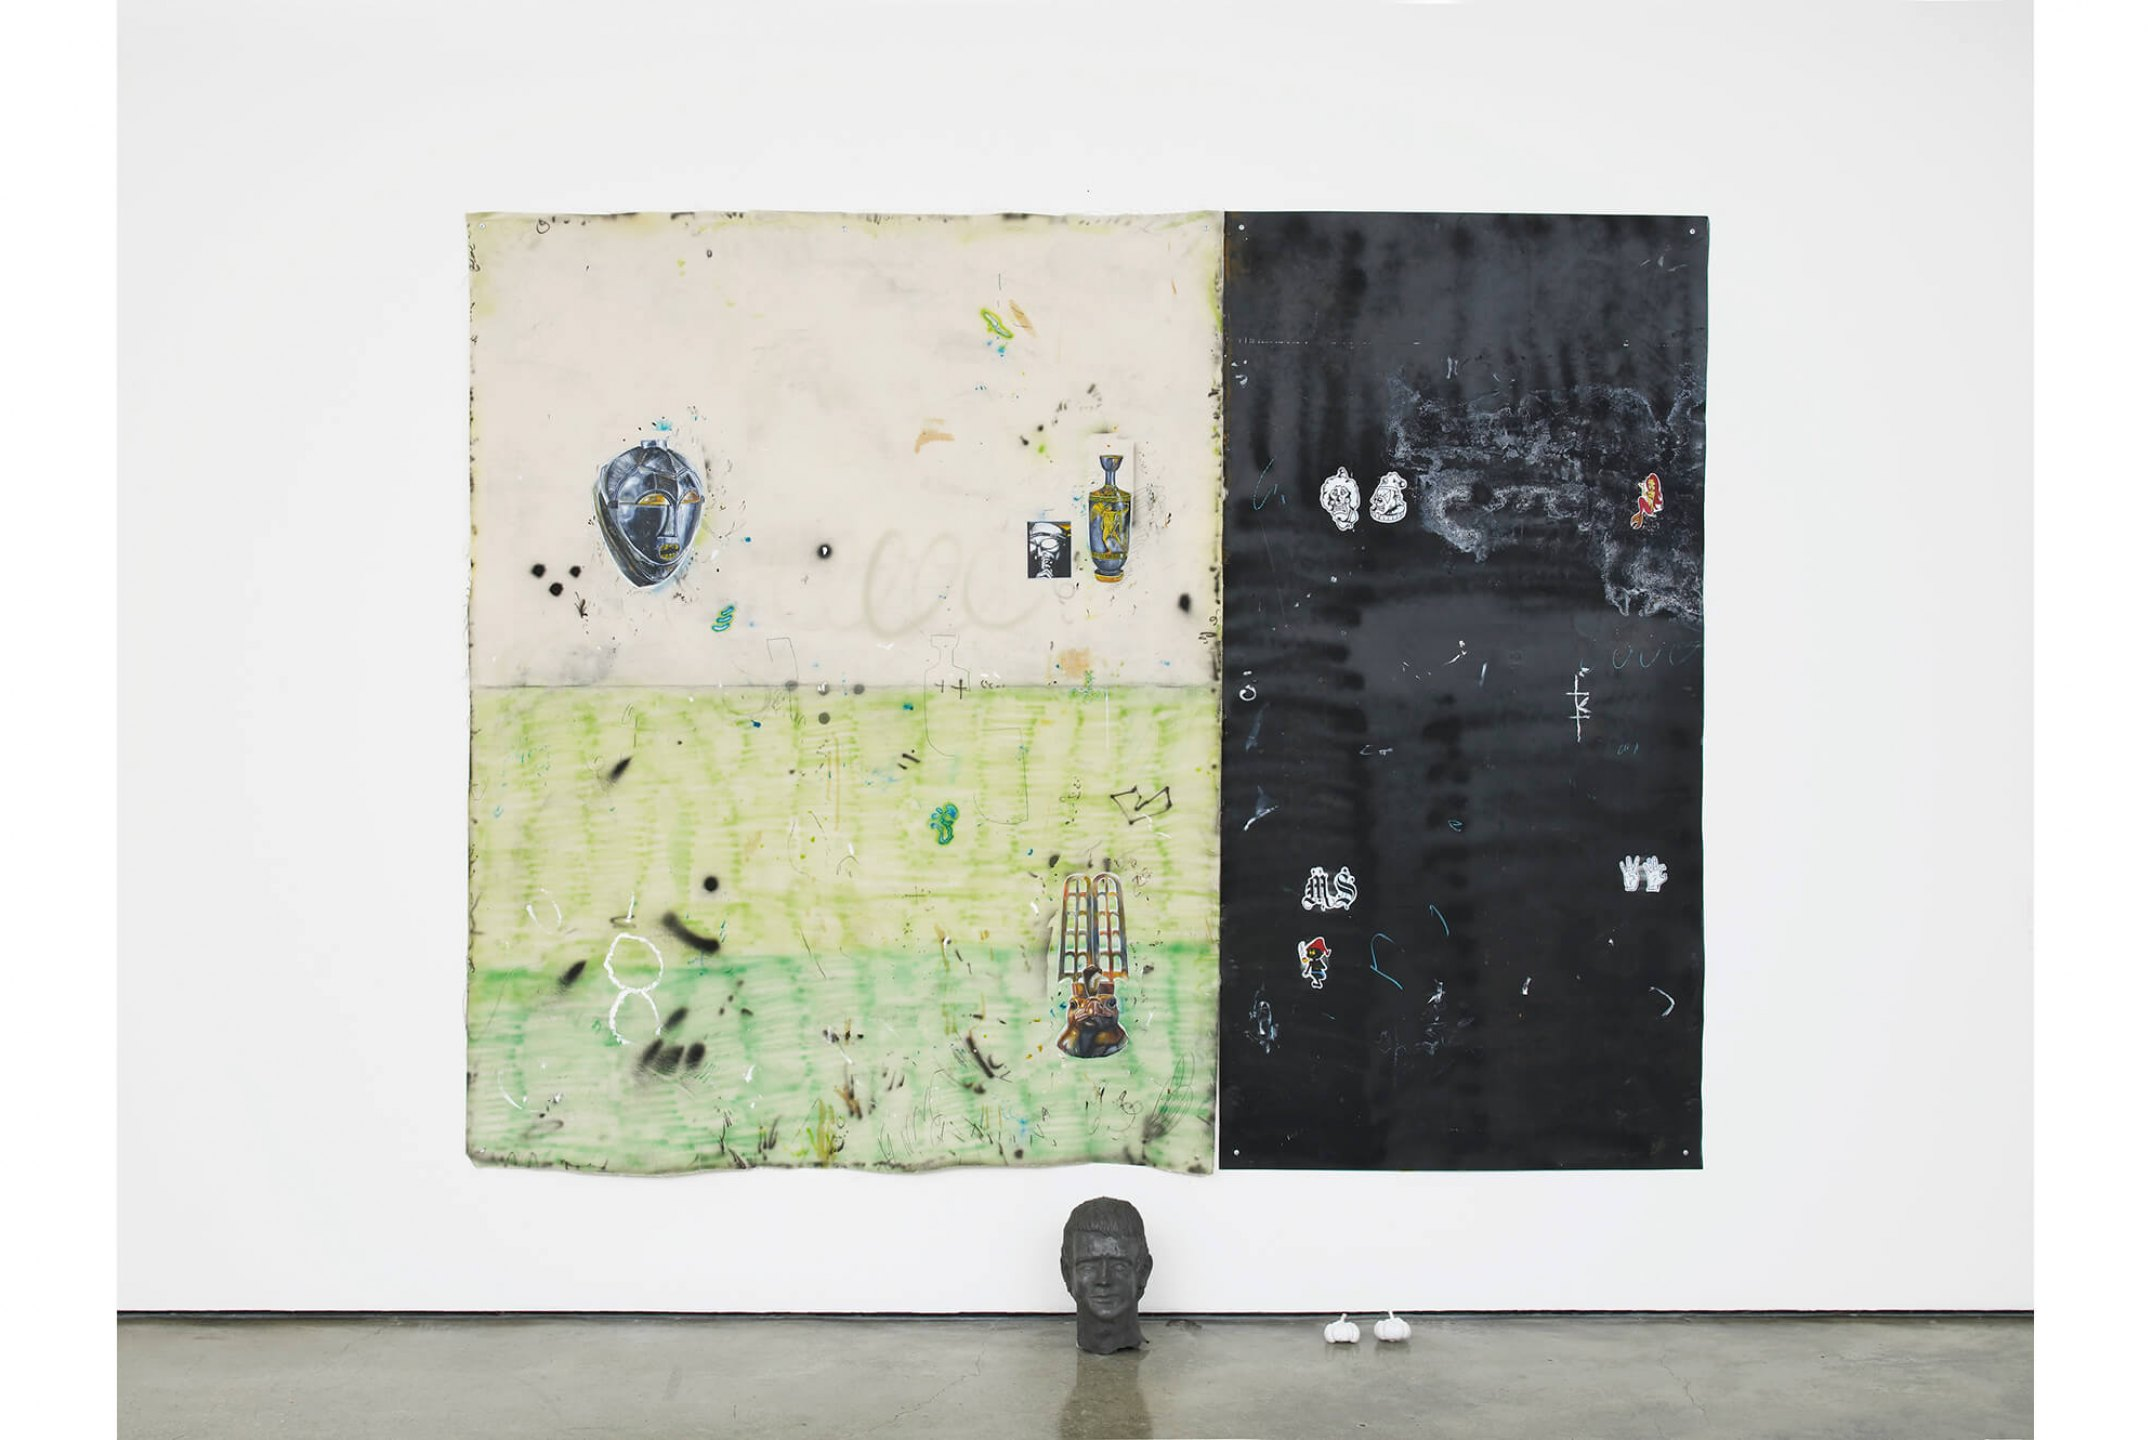 Paulo Nimer Pjota, <em>Between philosophy and crime, part. 3,</em> 2016, acrylic, pencil and pen on canvas and iron plate, 255 × 200 cm - Mendes Wood DM